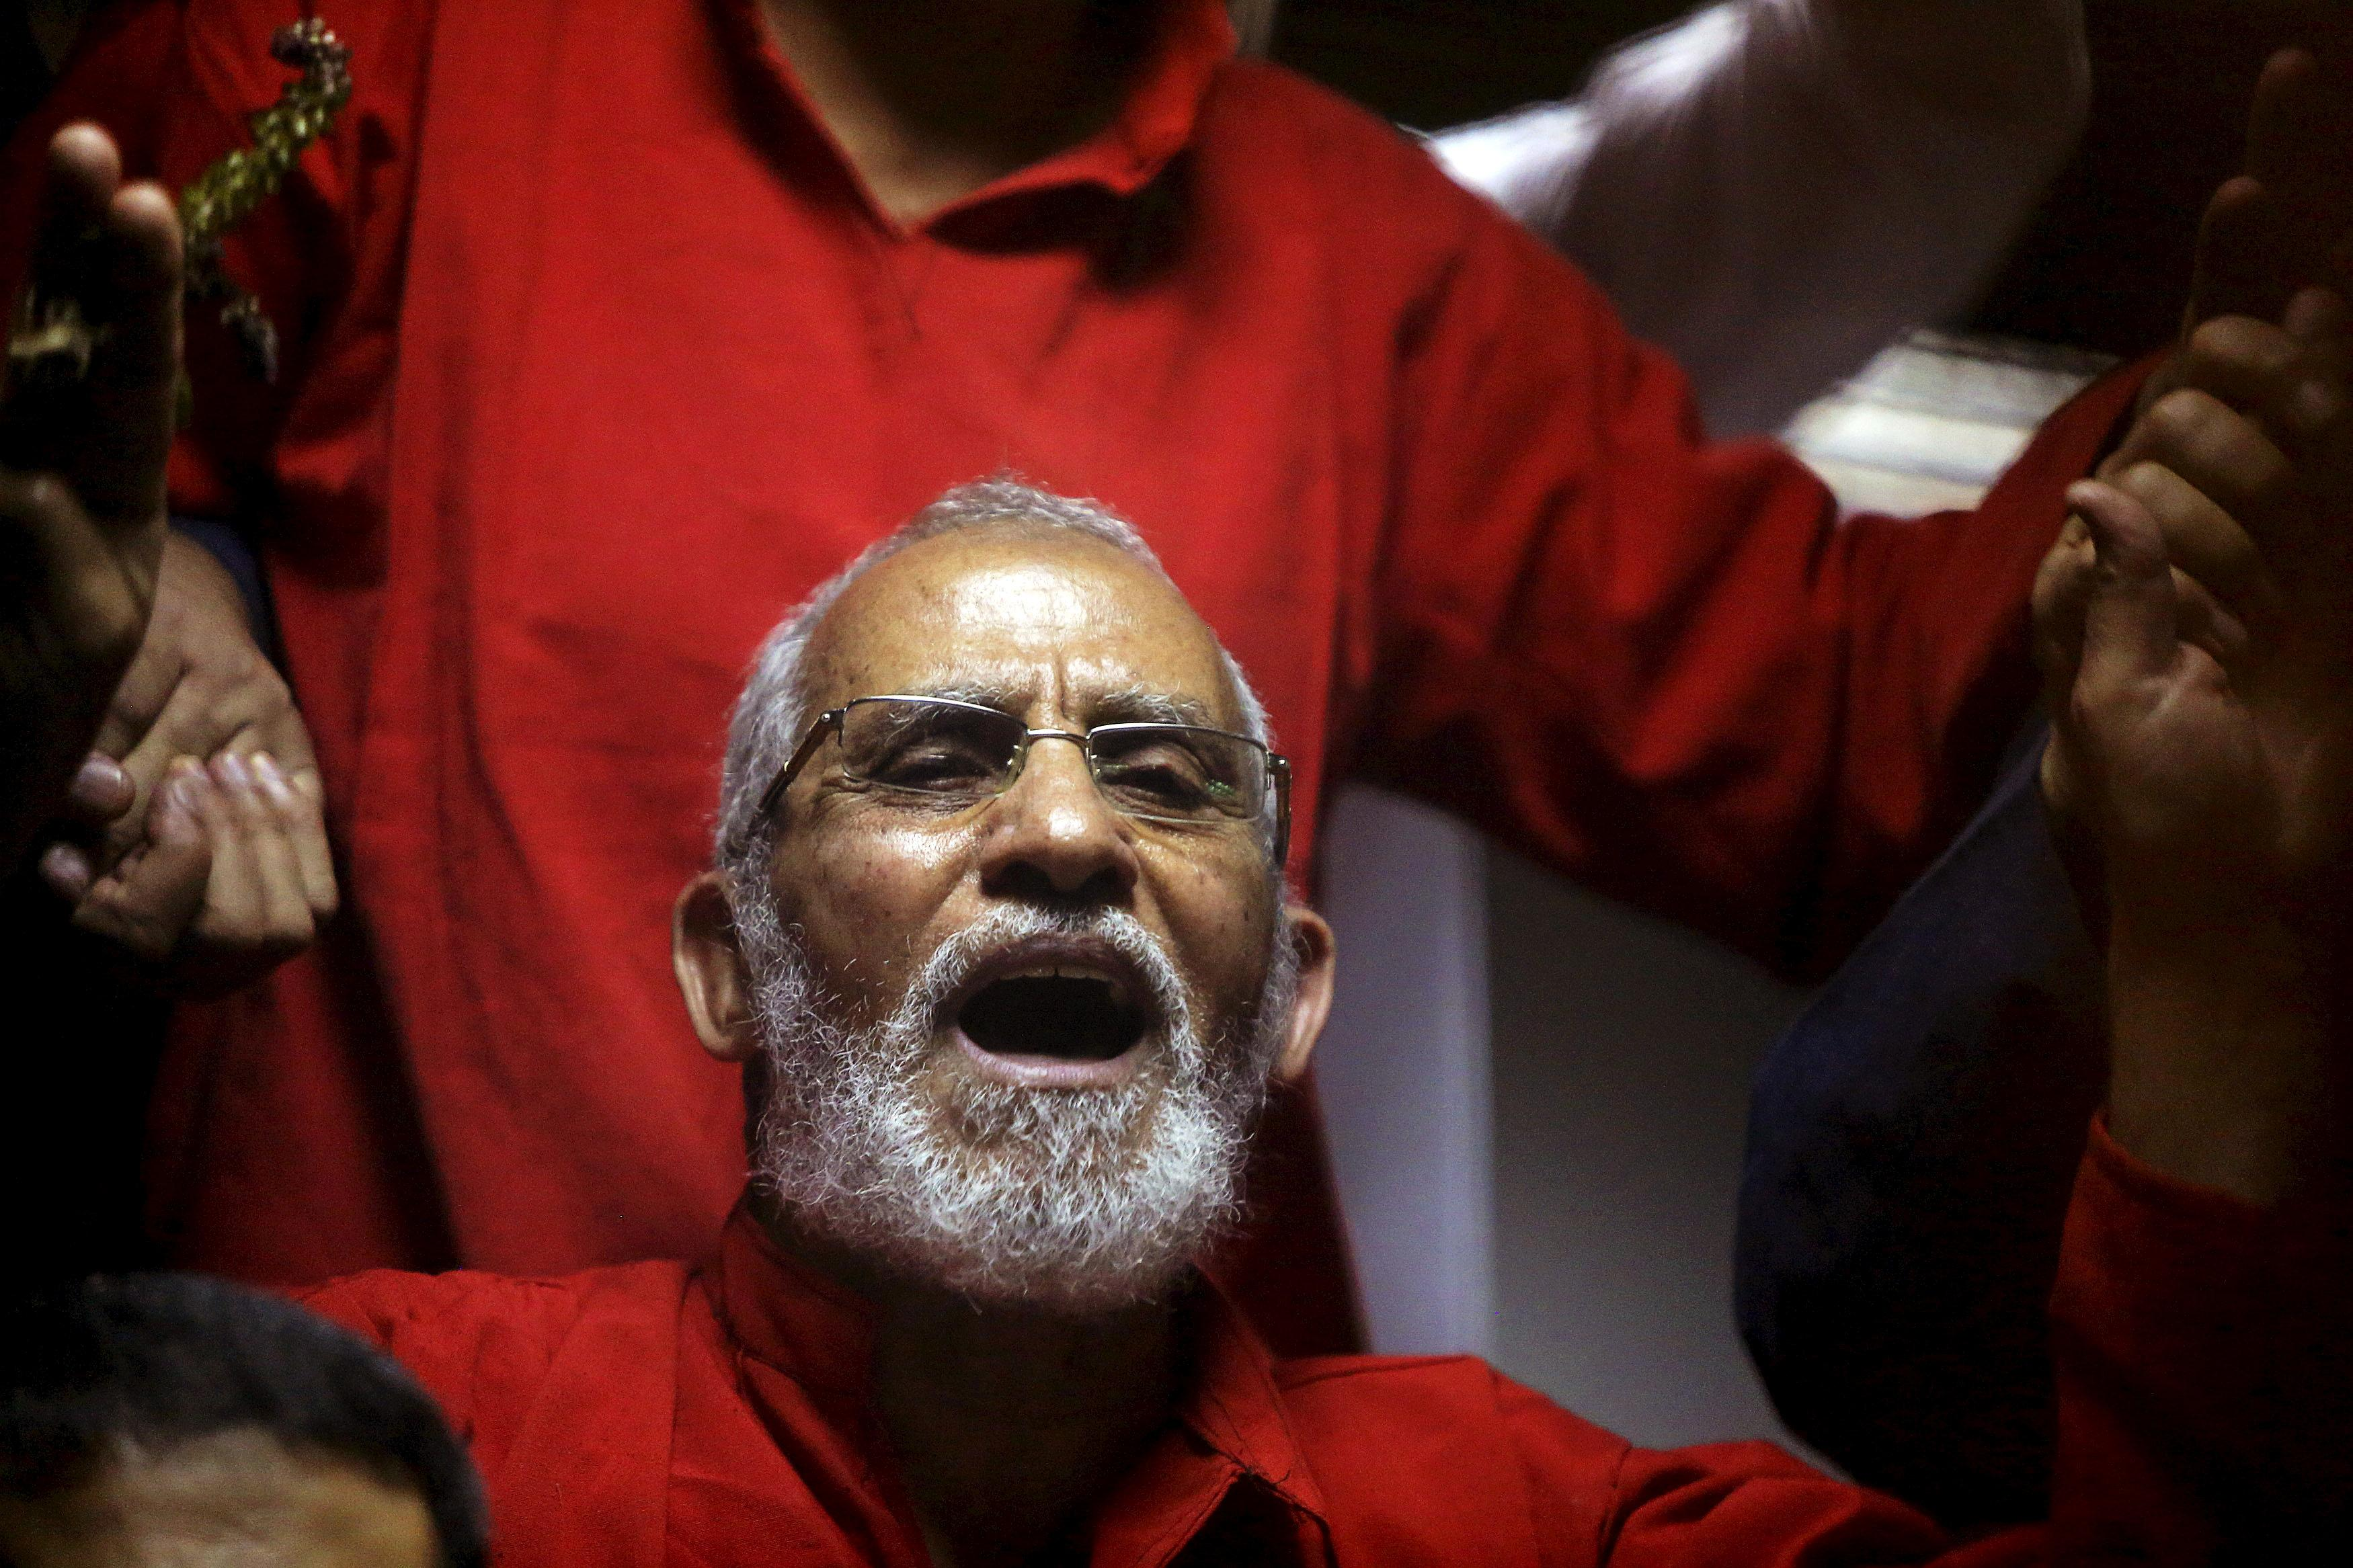 Muslim Brotherhood's Supreme Guide Mohamed Badie (C) reacts with other brotherhood members at a court in the outskirts of Cairo, Egypt May 16, 2015. Mohamed Abd El Ghany